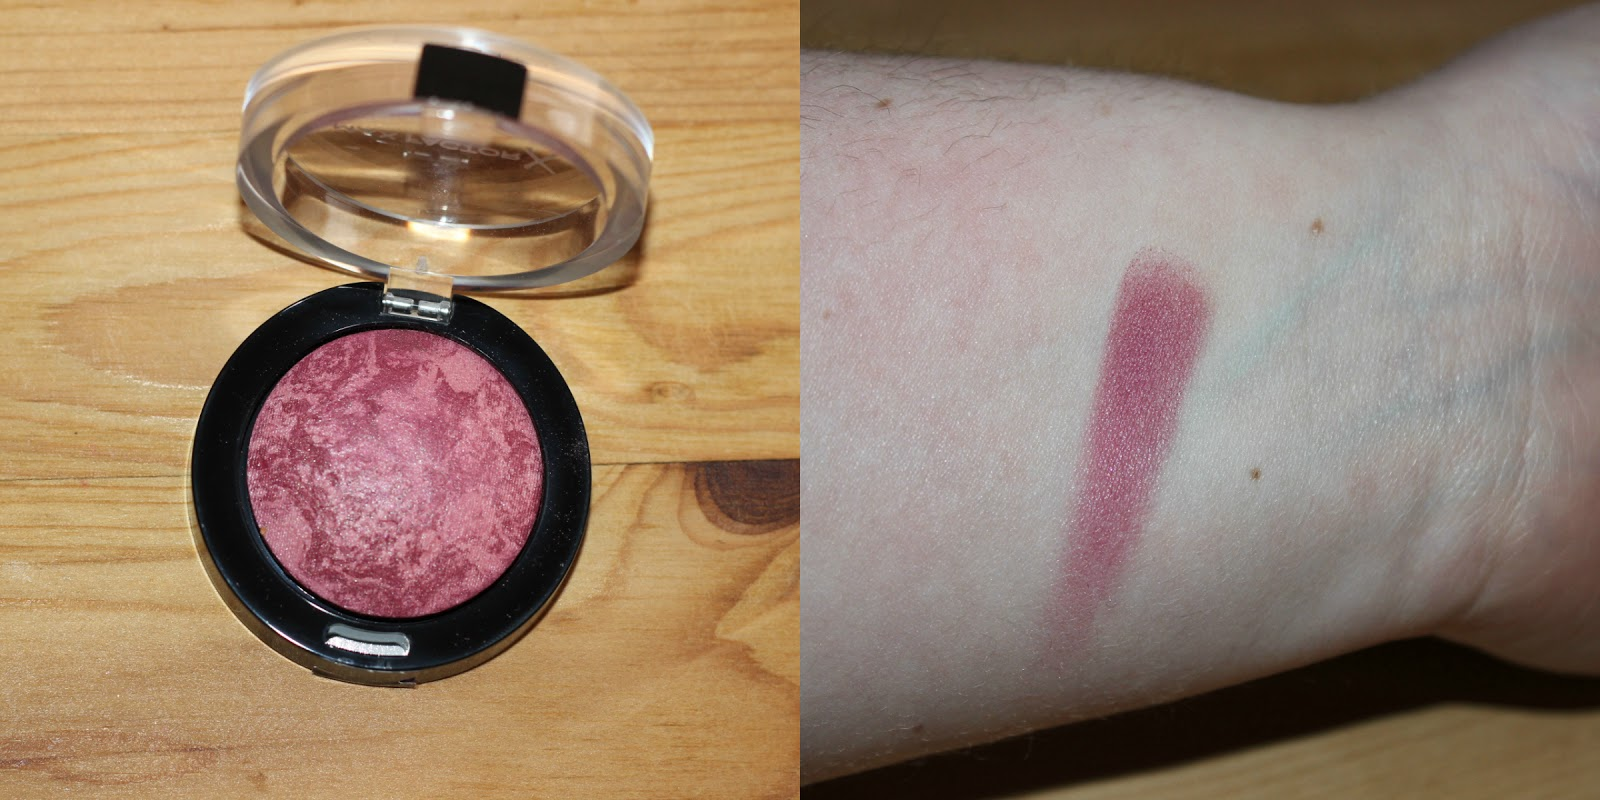 Maxfactor Creme Puff Blush In Gorgeous Berries Swatch